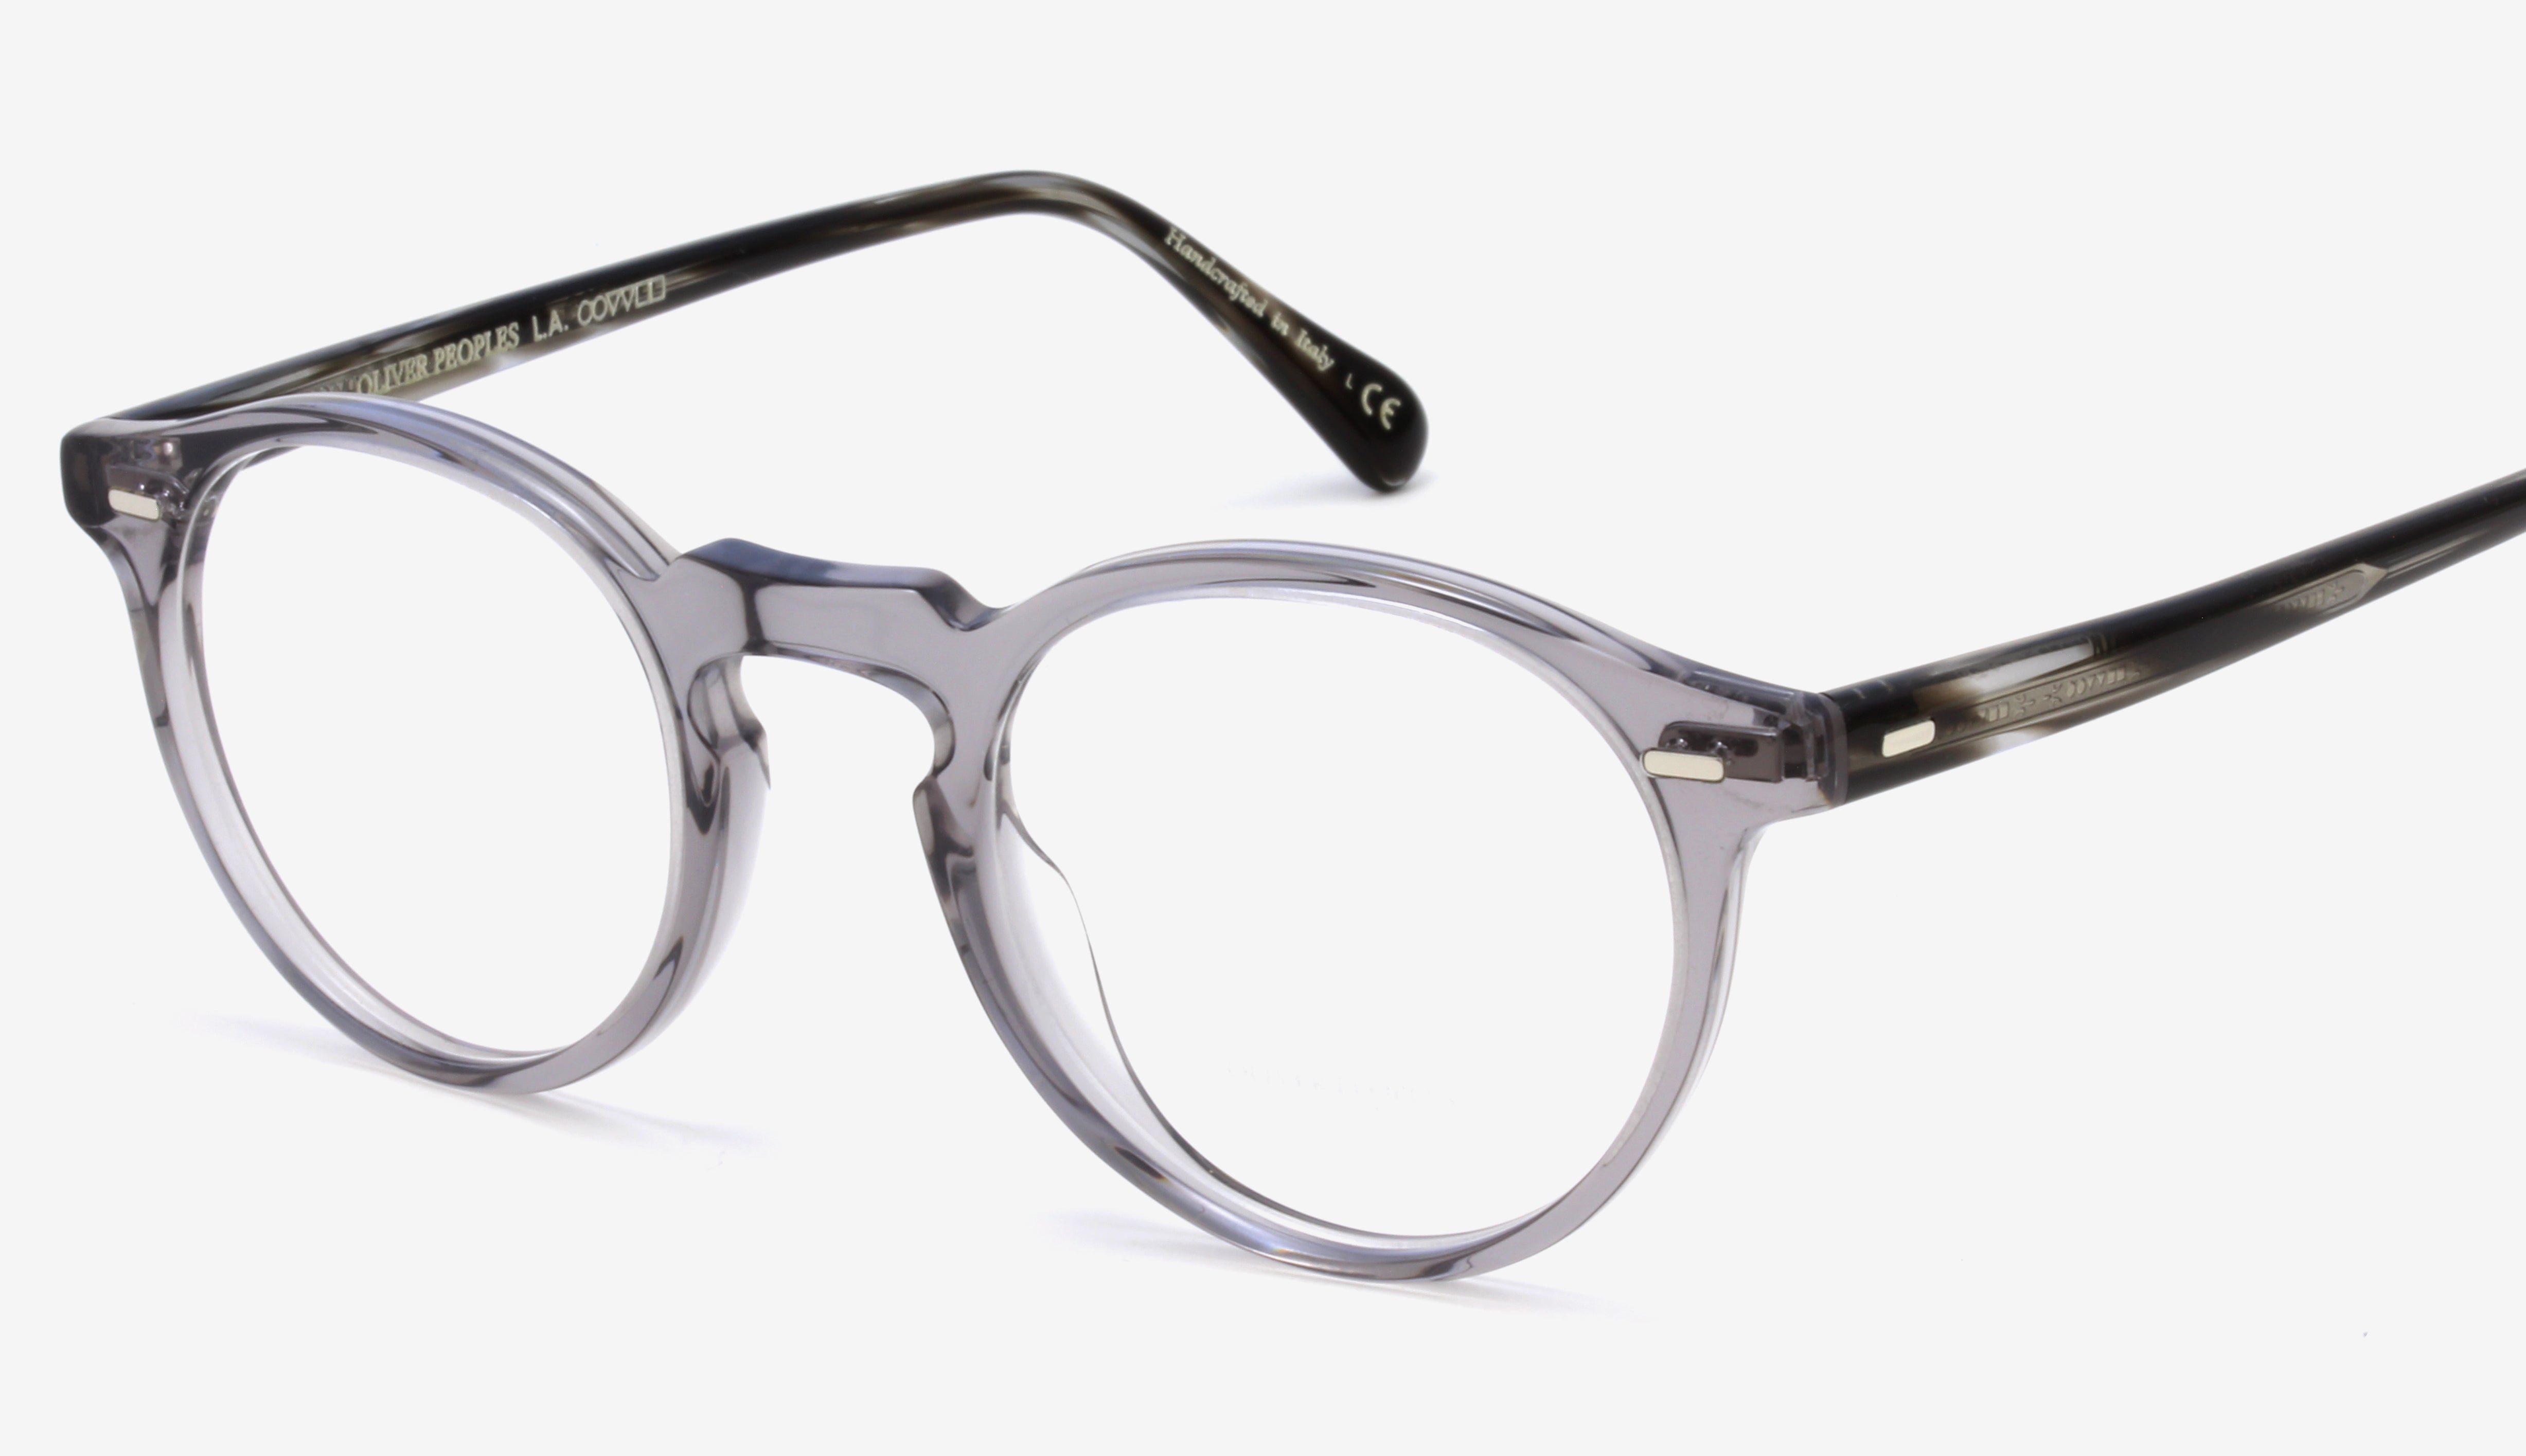 Oliver Peoples | Gregory Peck Eyeglasses in Workman Grey